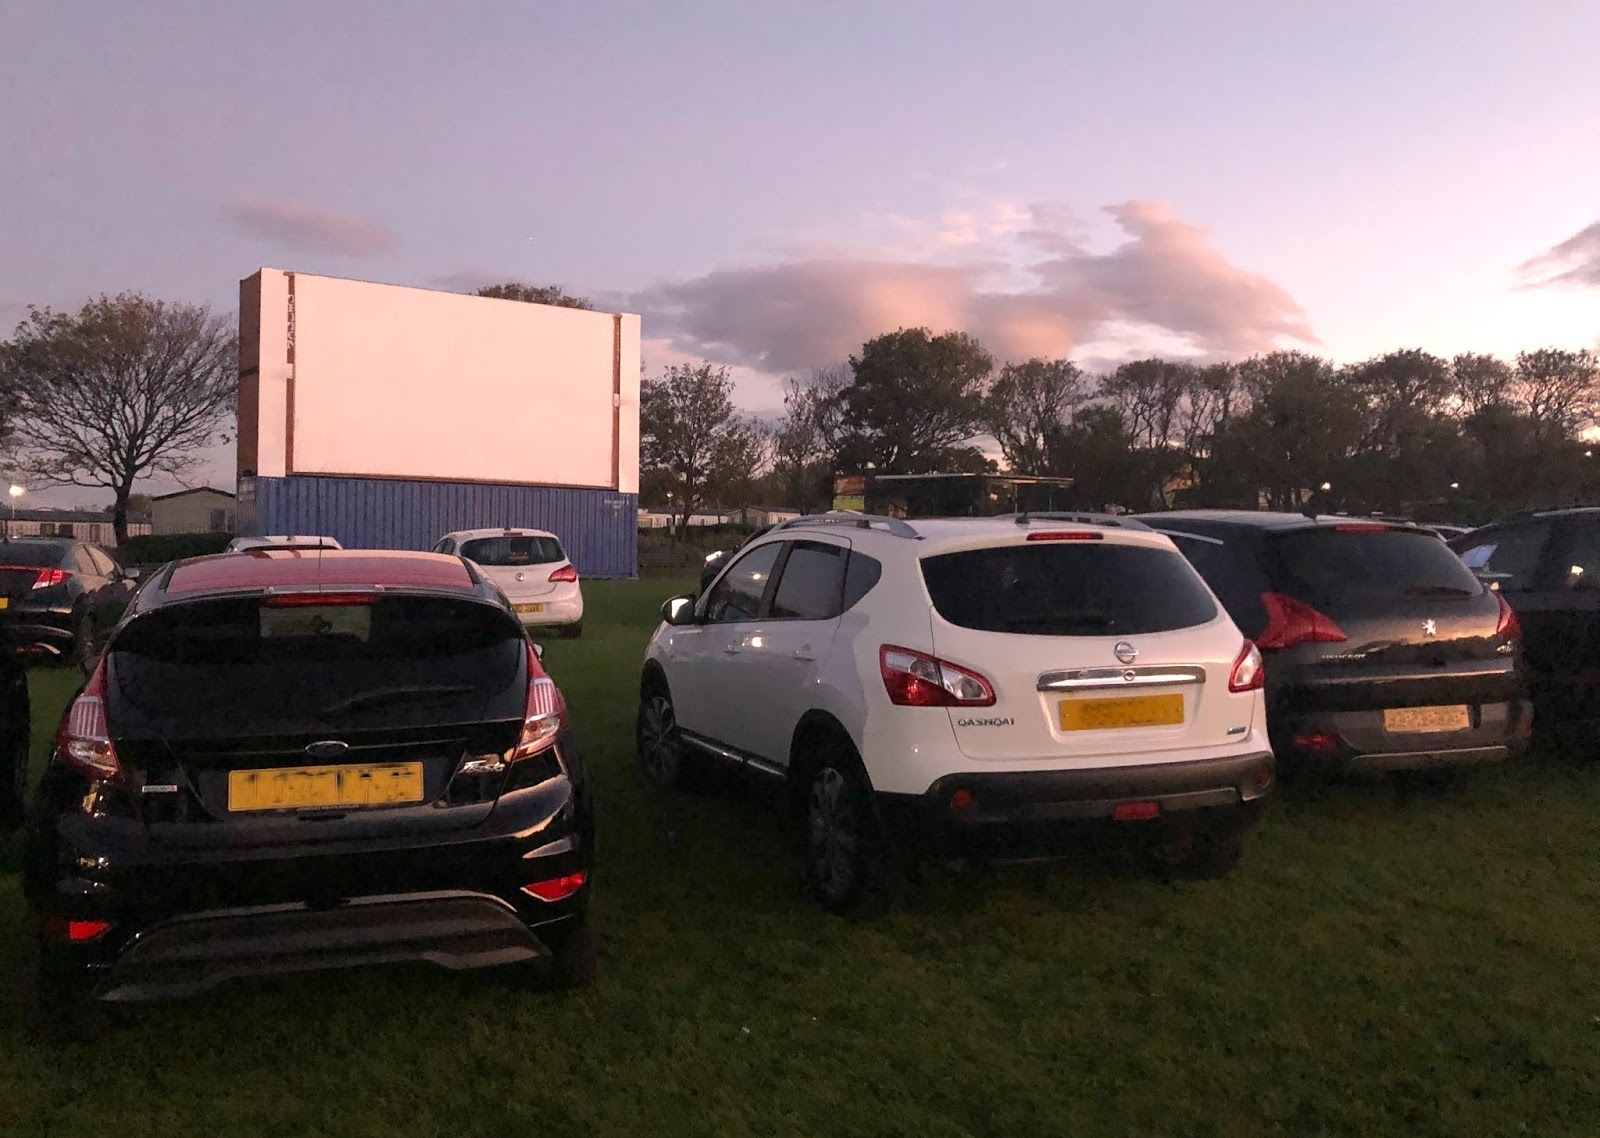 Drive in Cinema Shields